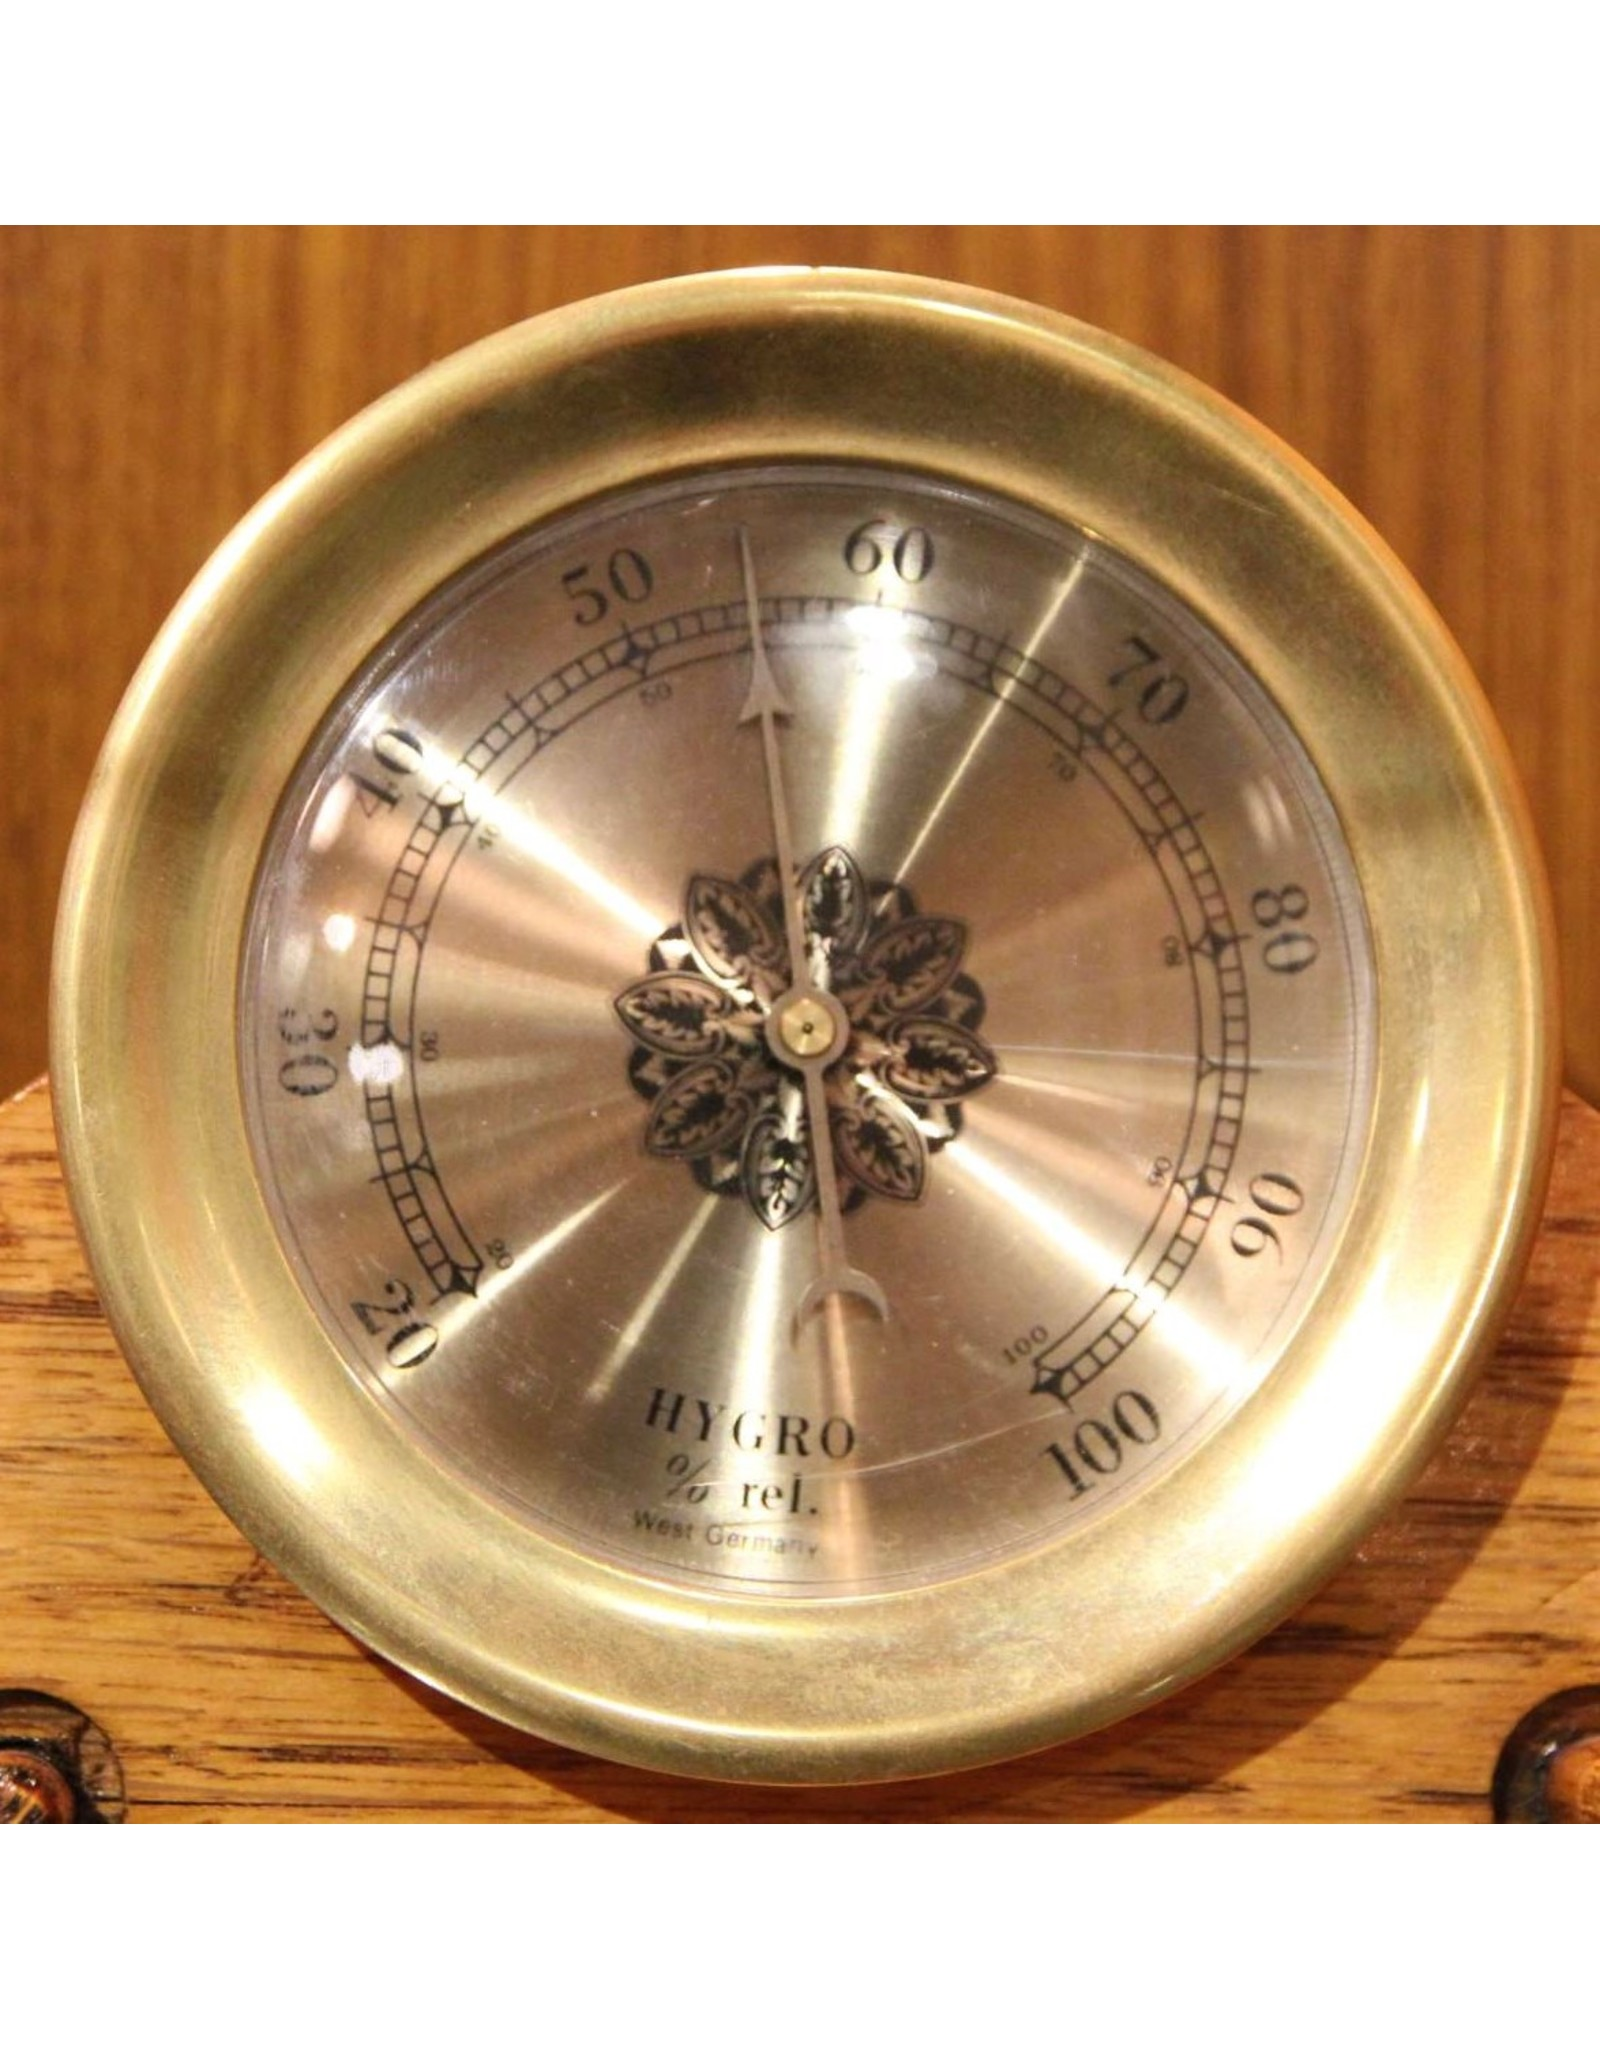 Barometer - West German made